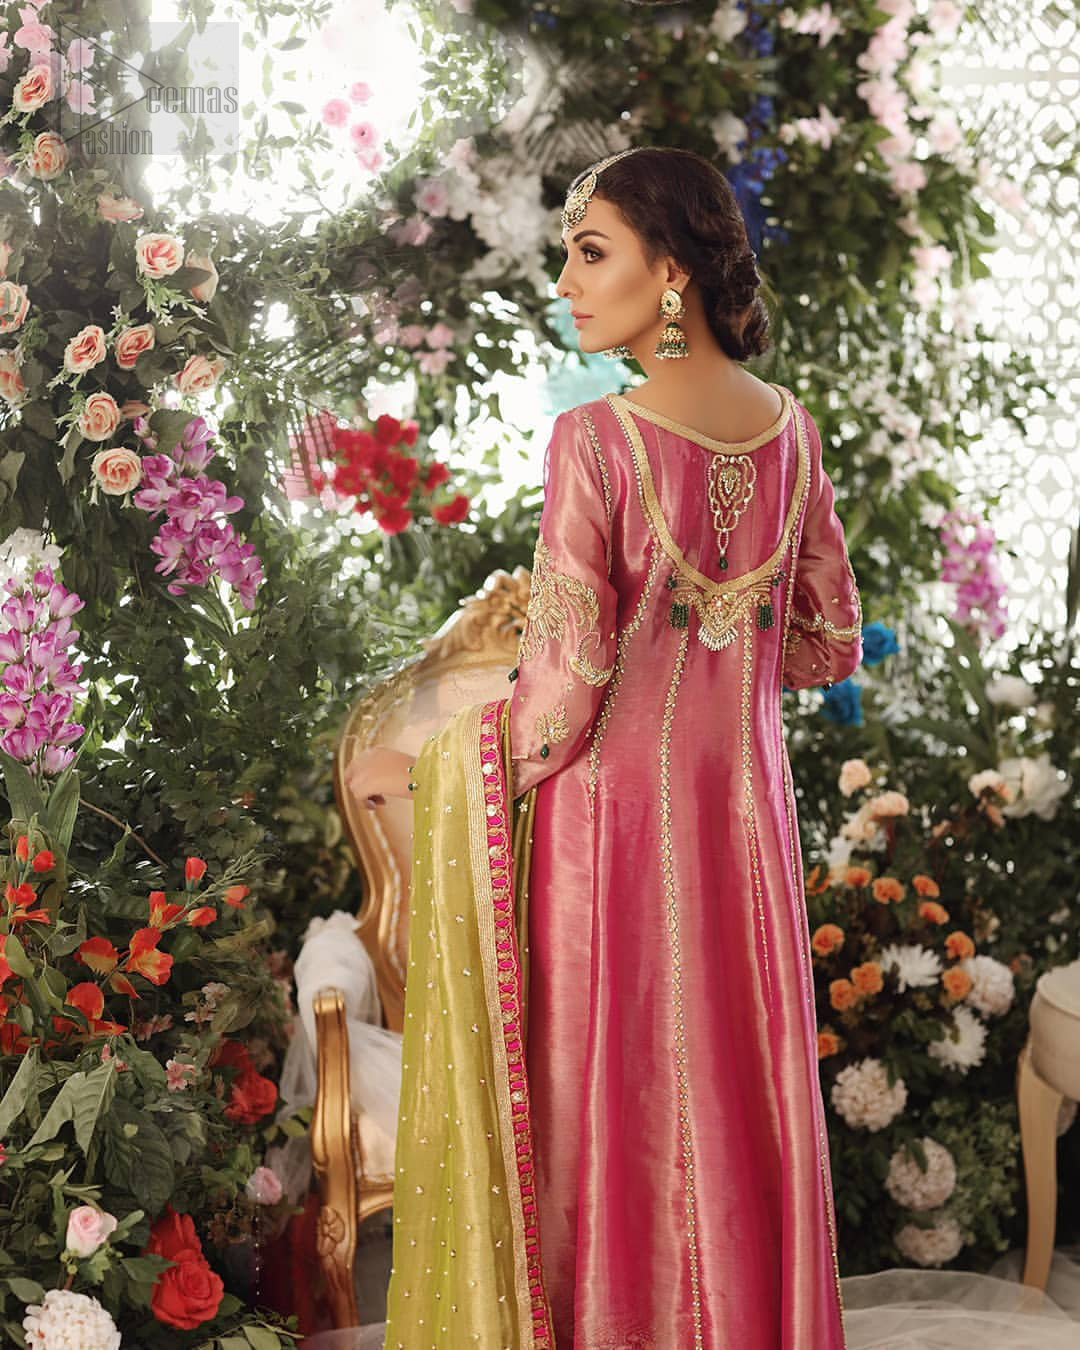 Nothing speaks of femininity and class louder than this mehndi outfits for bridesmaids. This beautiful mehndi dress comes with anarkali frock with beautiful embellished motifs around the scalloped hemline and vertically worked gold lines and heavily embellished neckline with light golden, champagne and antique shaded zardozi work. It comes with sharara adorned with colored floral embroidery with champagne embellishment. Complete the look with parrot green dupatta having four sided applique borders and sequins spray on the ground.